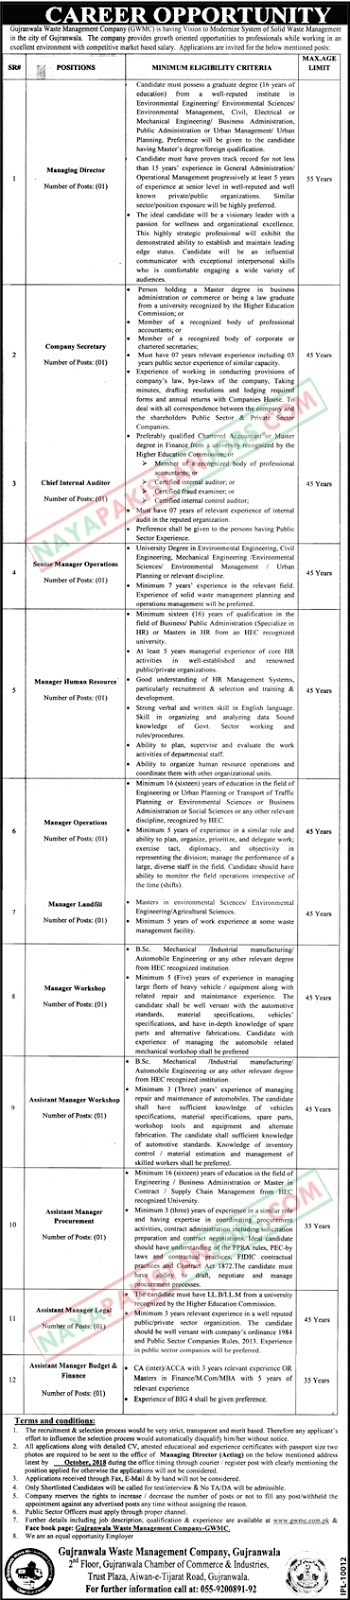 Latest Vacancies Announced in Gujranwala Waste Management Company GWMC 11 October 2018 - Naya Pakistan